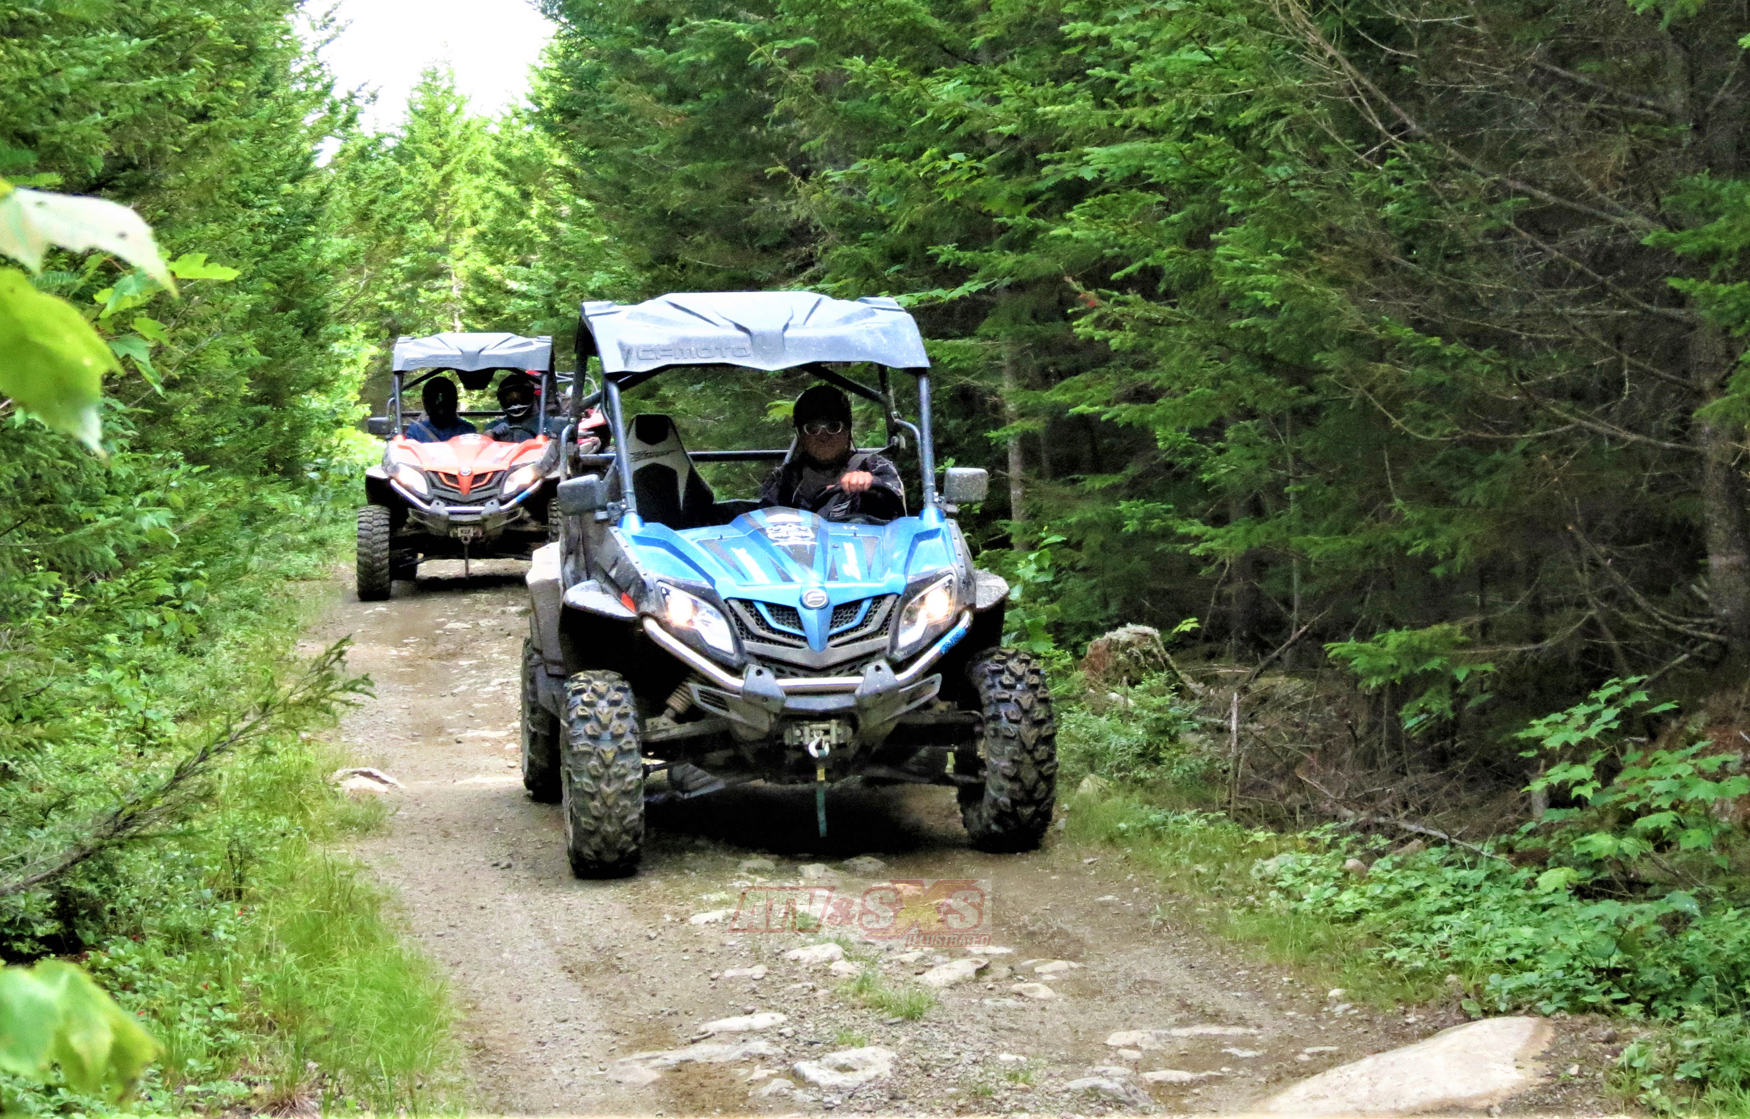 northern-outdoors-trail-ride-atvs-1.jpg